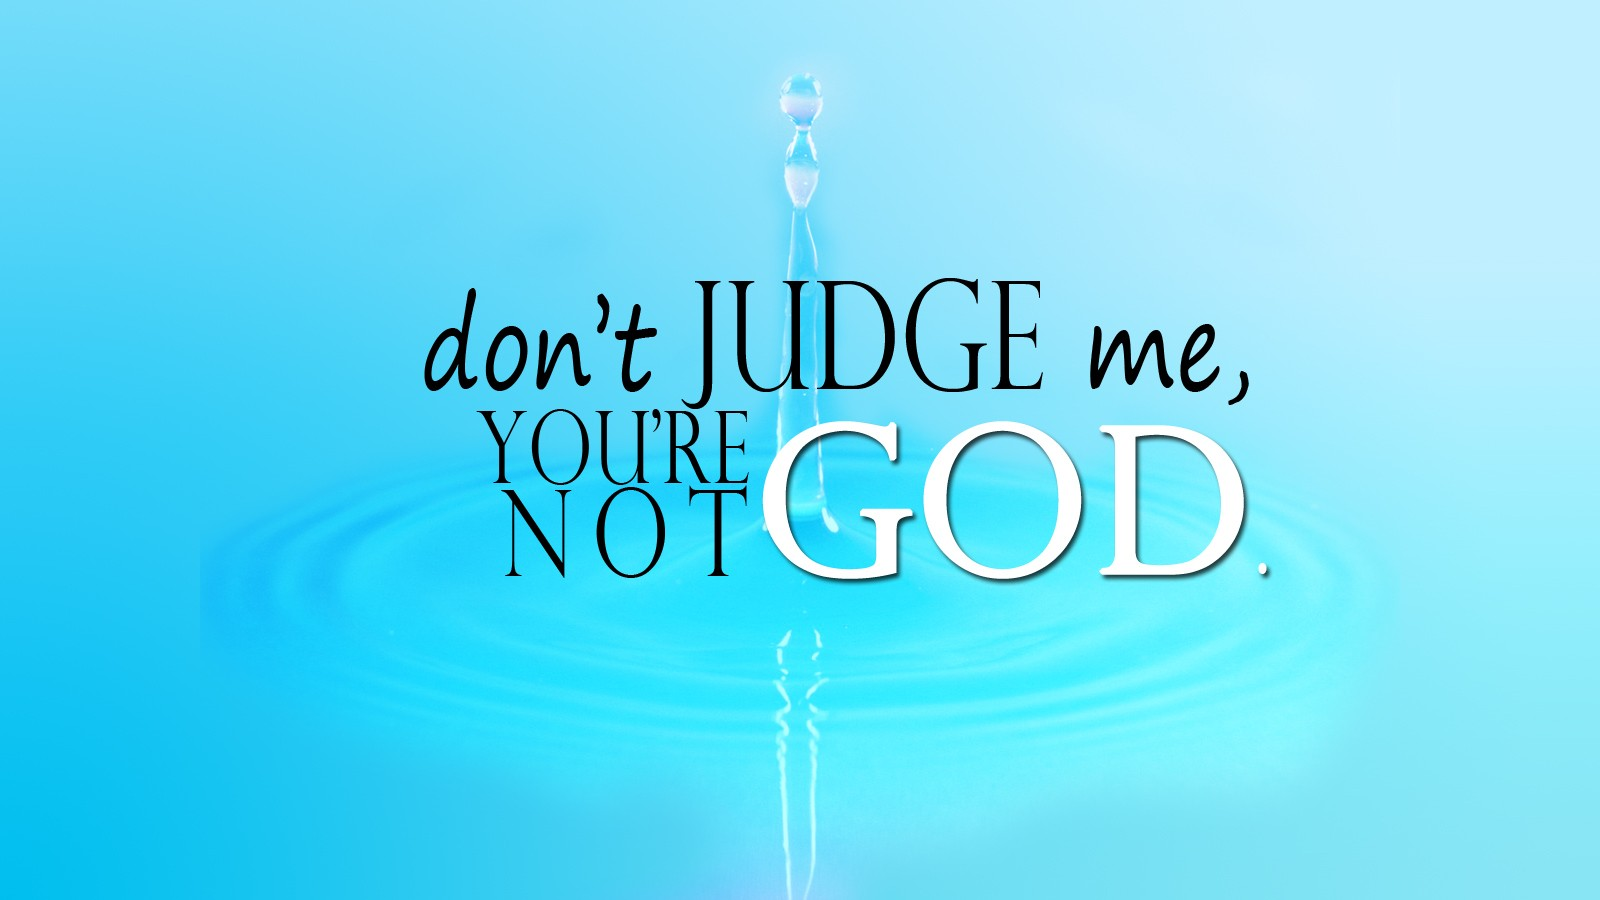 Water Quotes Water Quotes God Religious Wallpaper  1600X900  59397  Wallpaperup